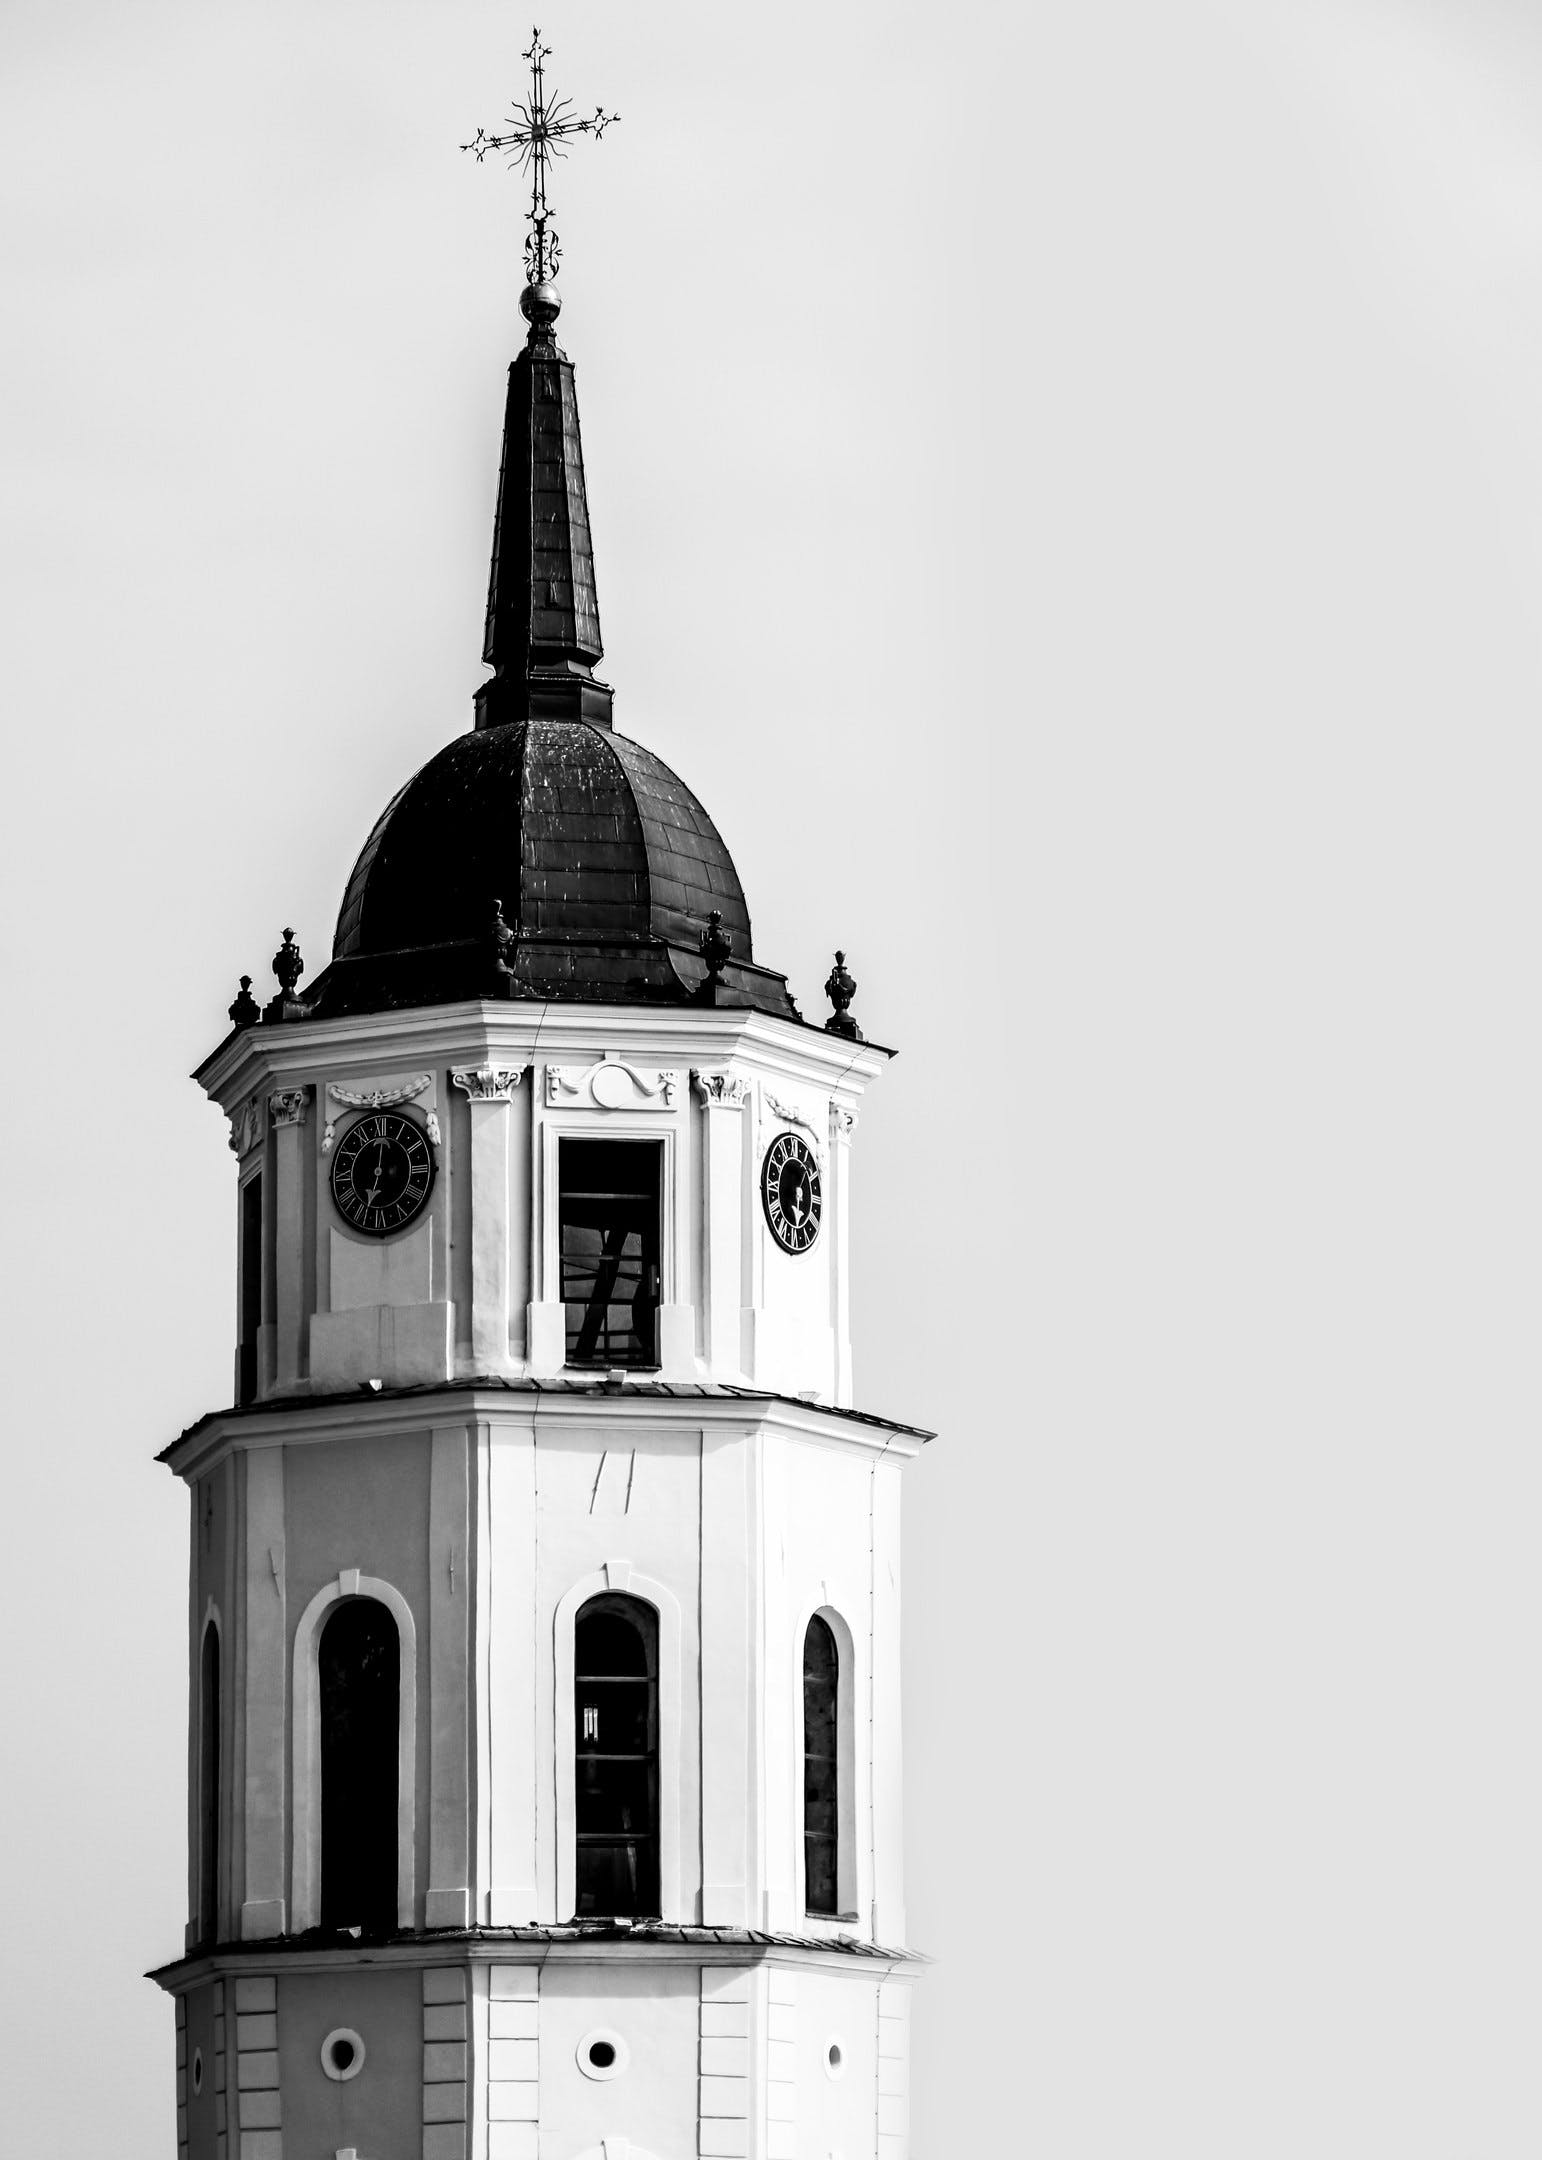 White Black Church Clock Tower